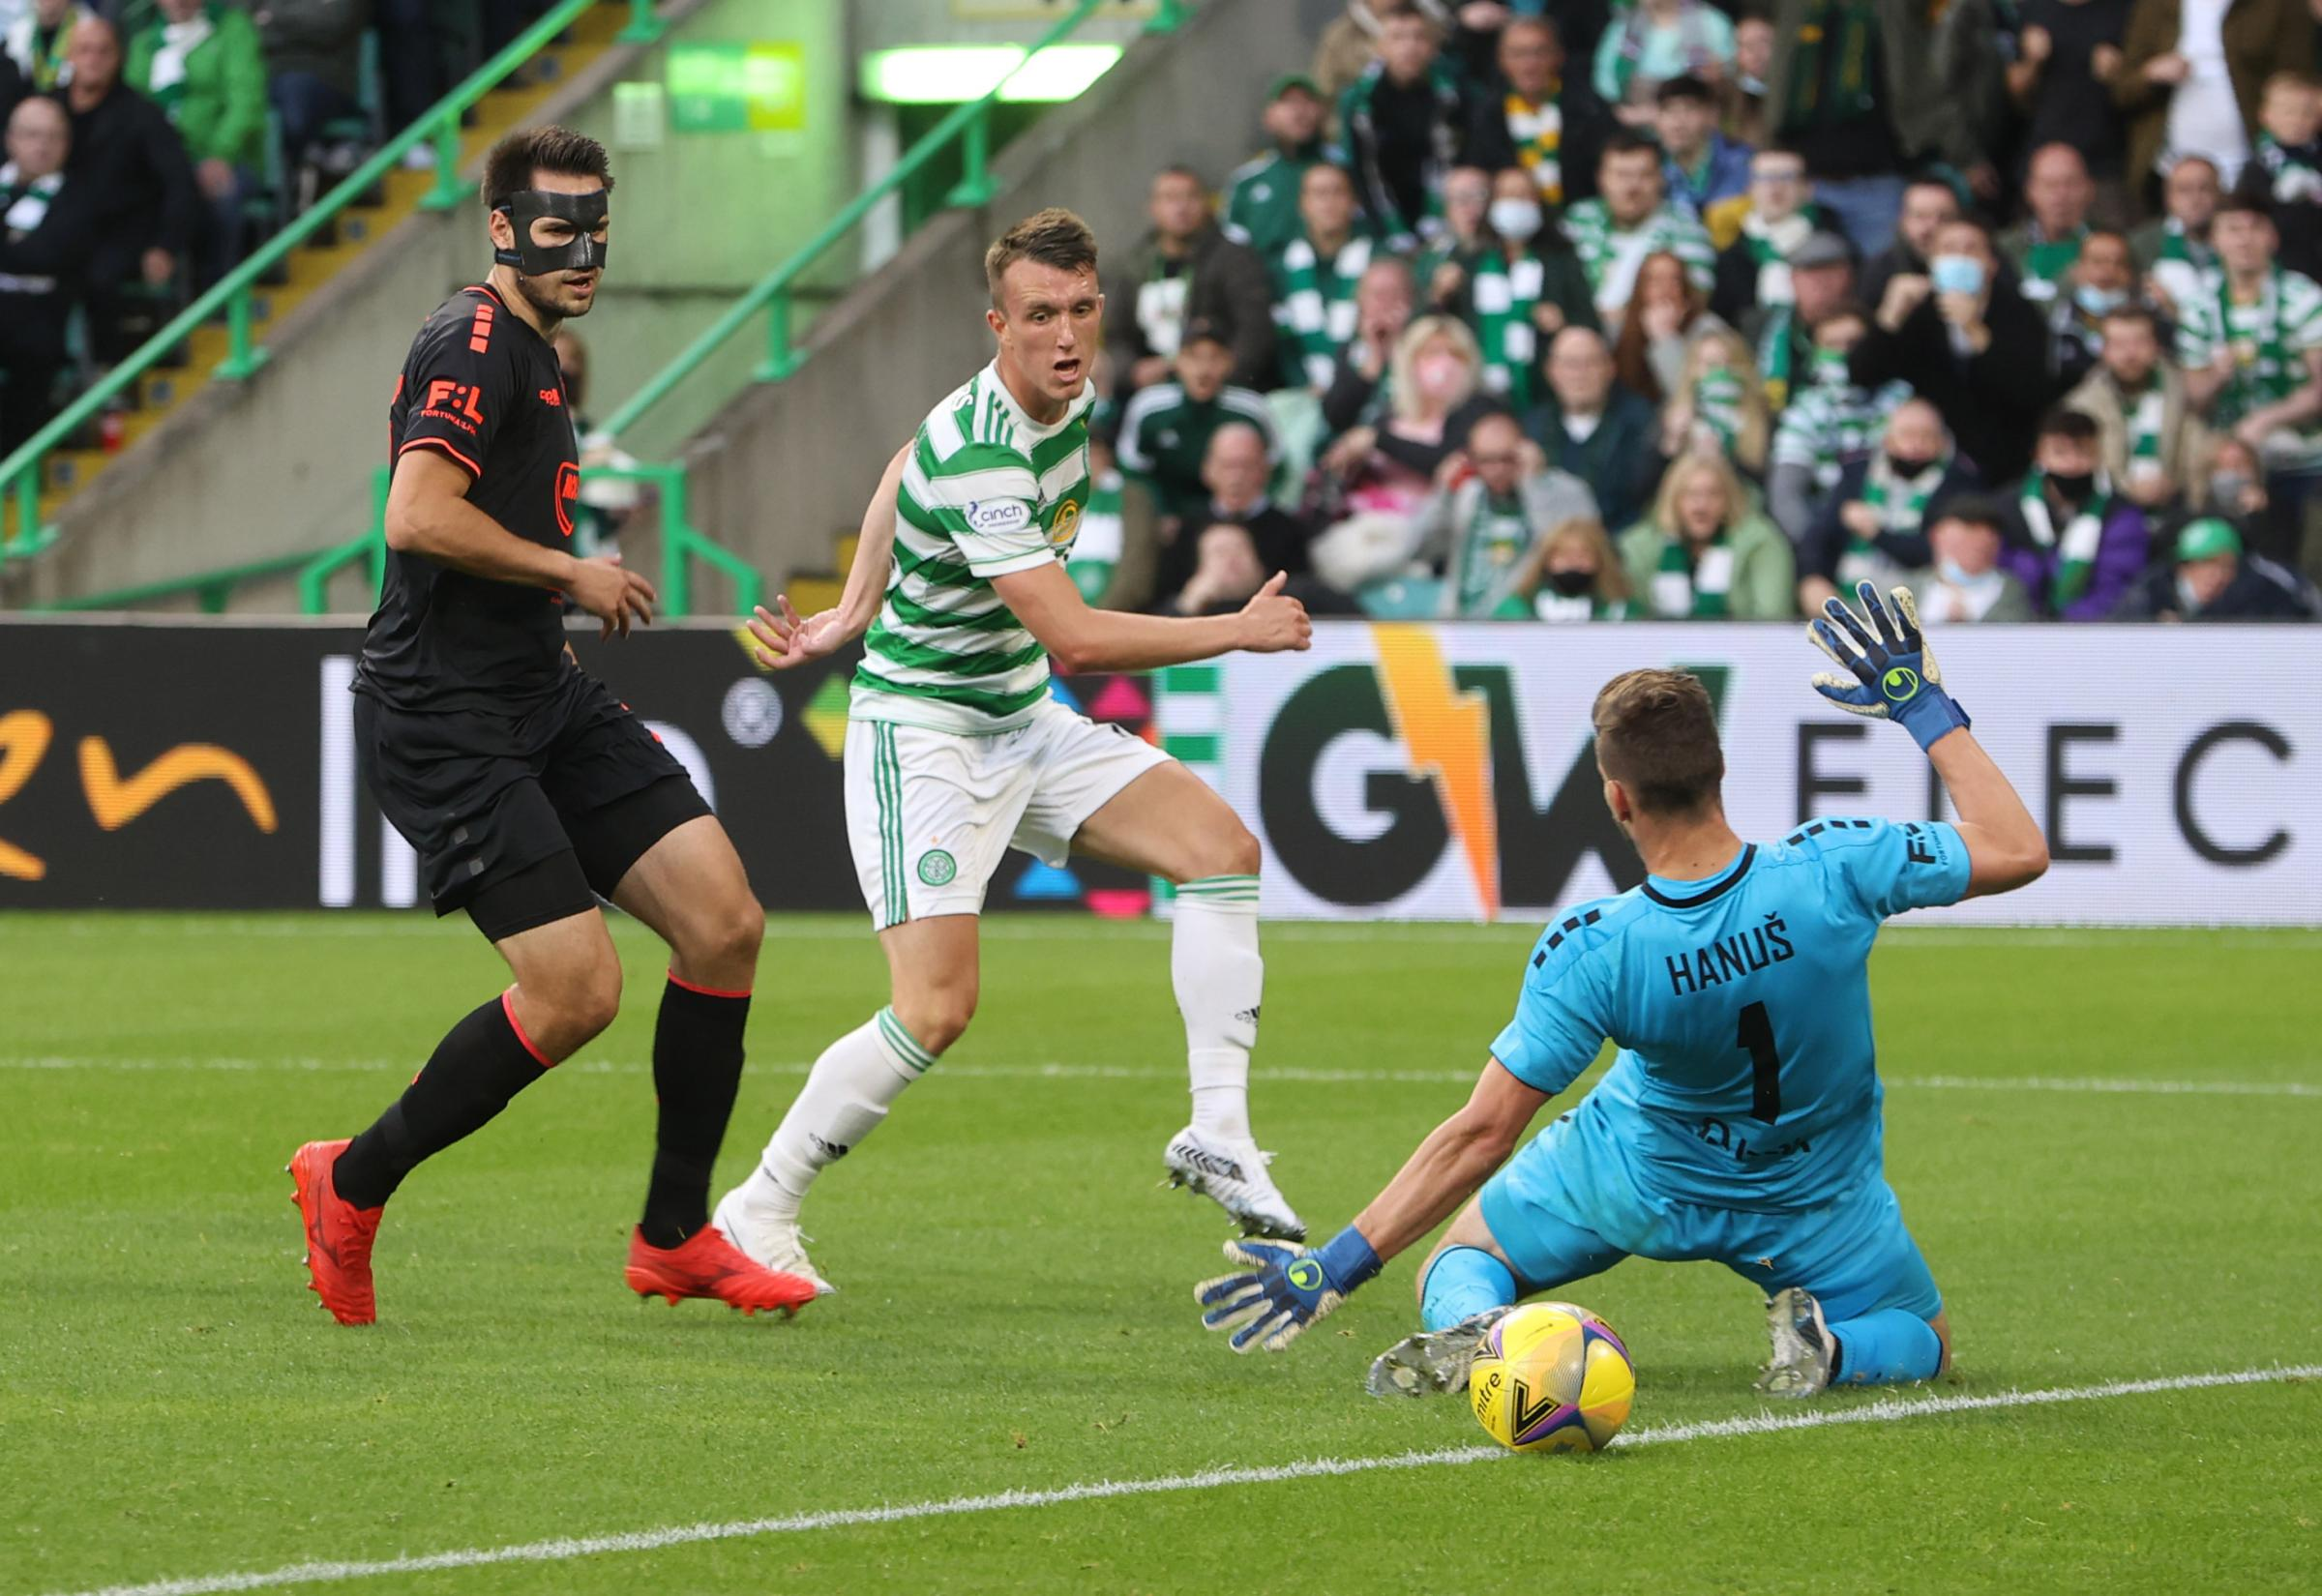 Celtic 3-0 Jablonec (7-2 aggregate): David Turnbull double books Europa League play-off spot at packed Parkhead